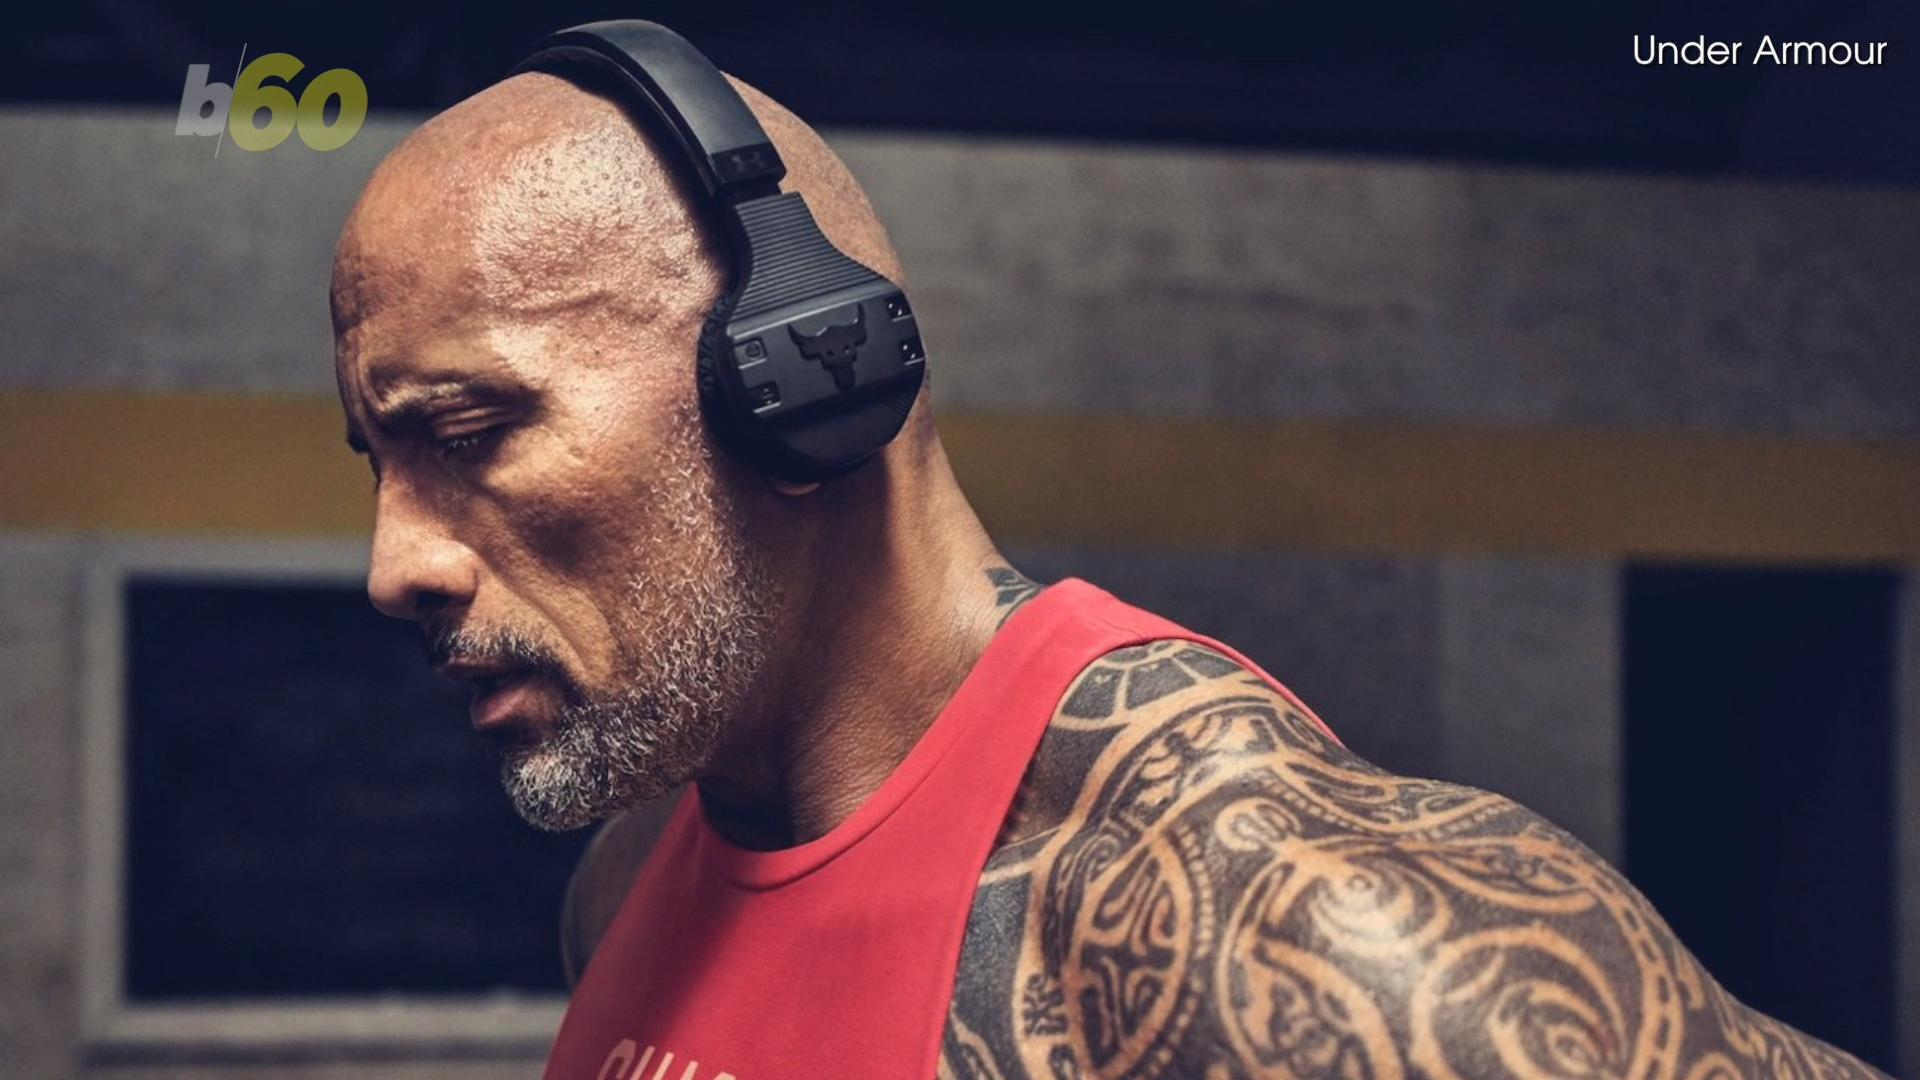 Dwayne 'The Rock' Johnson unveils latest Under Armour Project Rock collection, 'Iron Will,' with the help of Lindsey Vonn